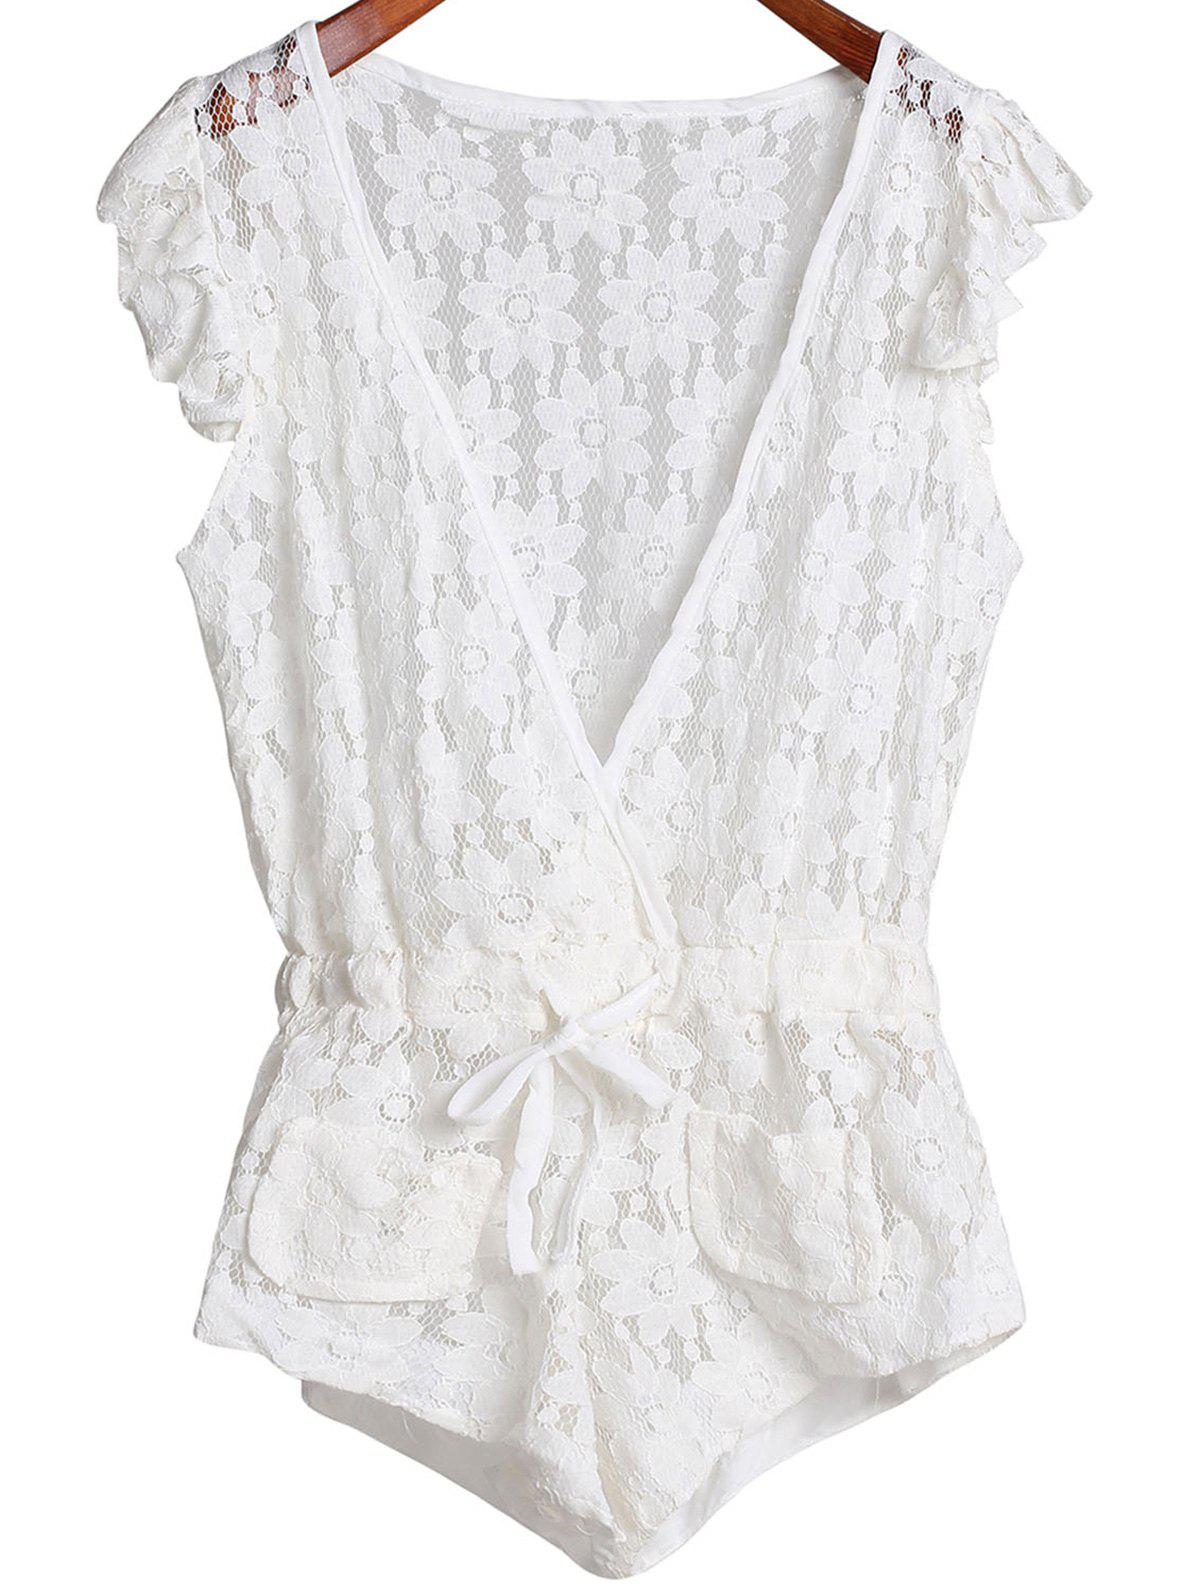 Sleeveless Plunging Neck Cut Out Women's Lace Romper